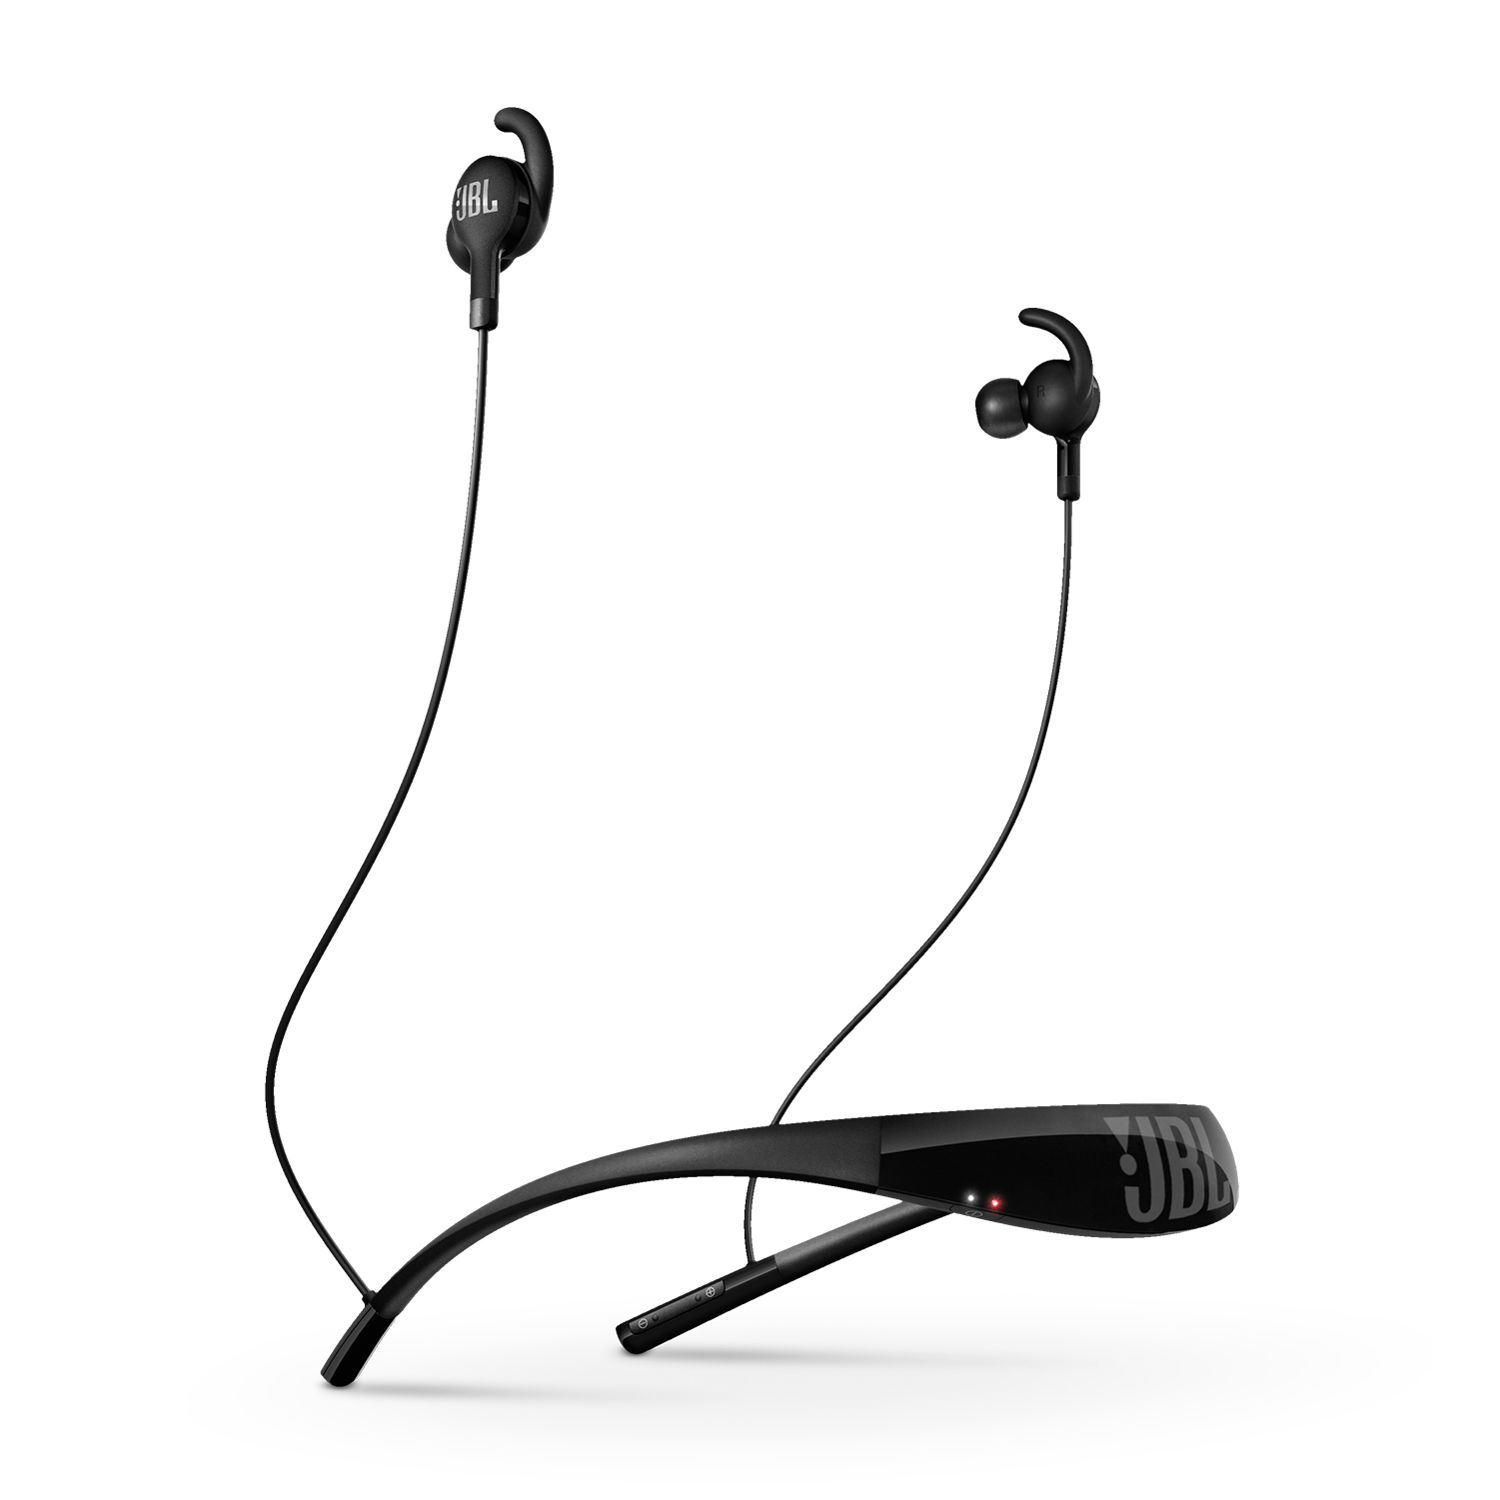 Bluetooth headphones with noise cancellation - headphones with microphone and bluetooth